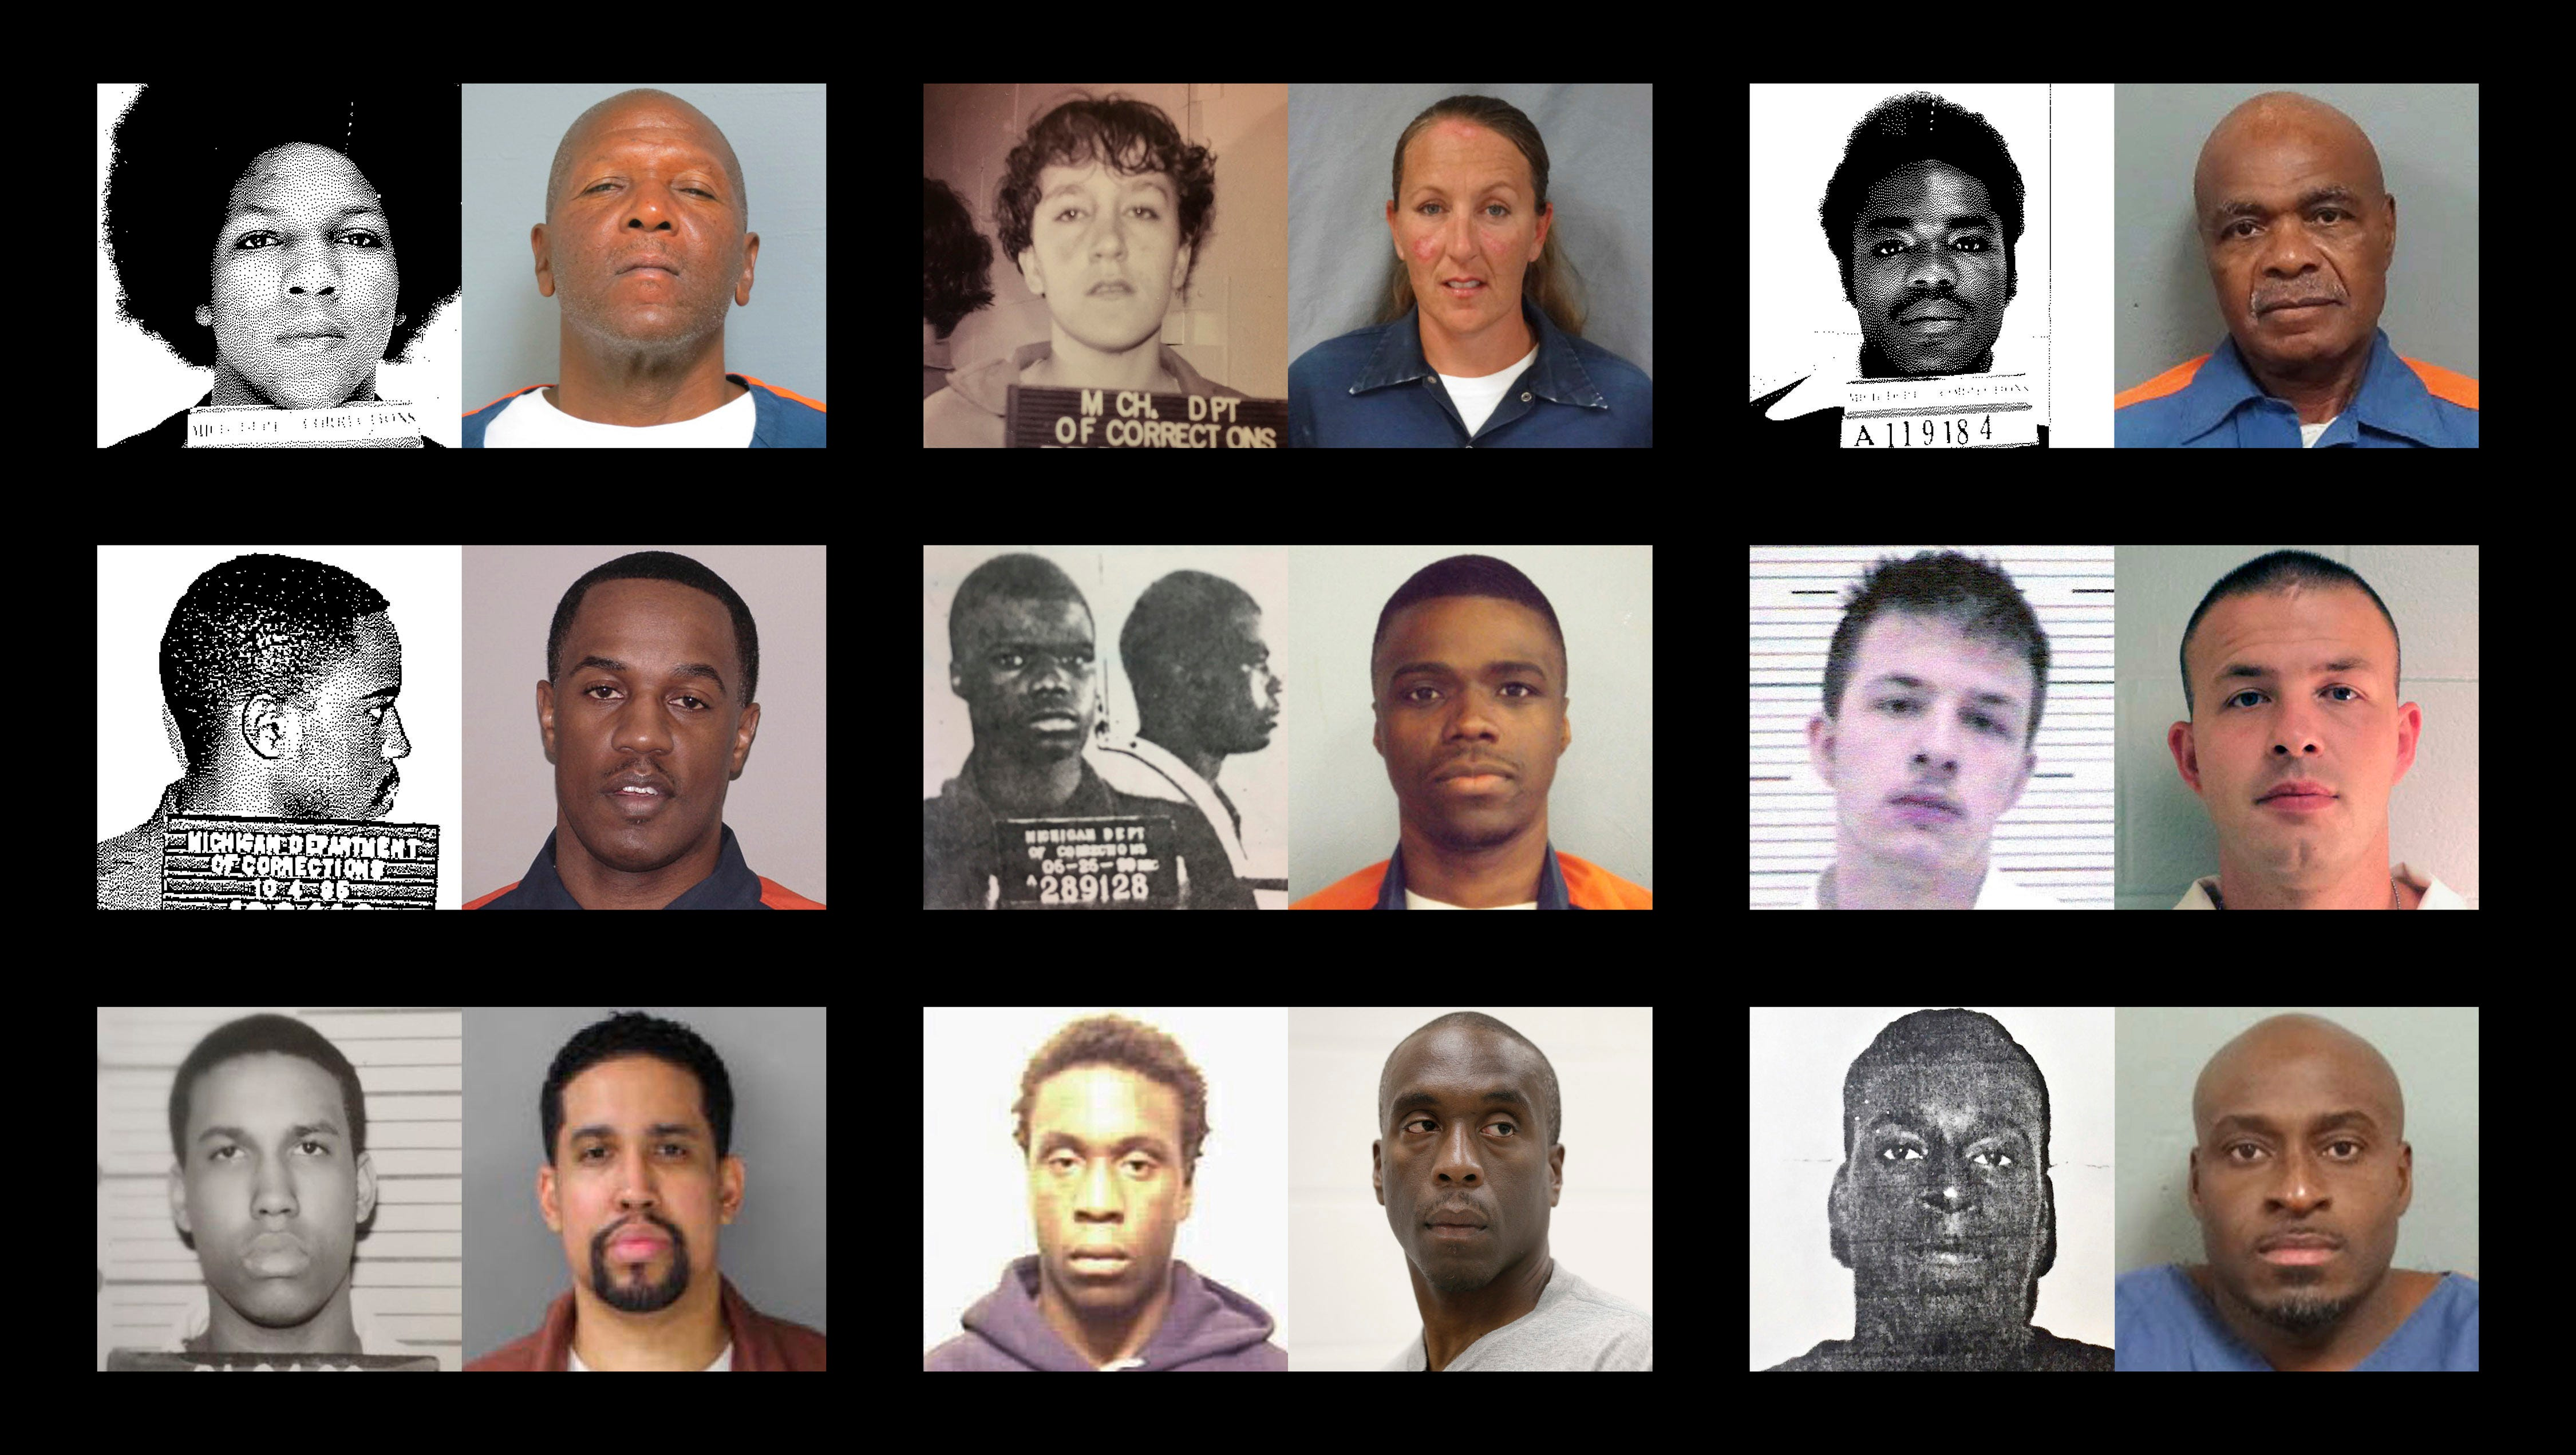 A State By State Look At Juvenile Life Without Parole Kip kinkel committed horrible crimes and im not going to downplay the pain he caused. juvenile life without parole